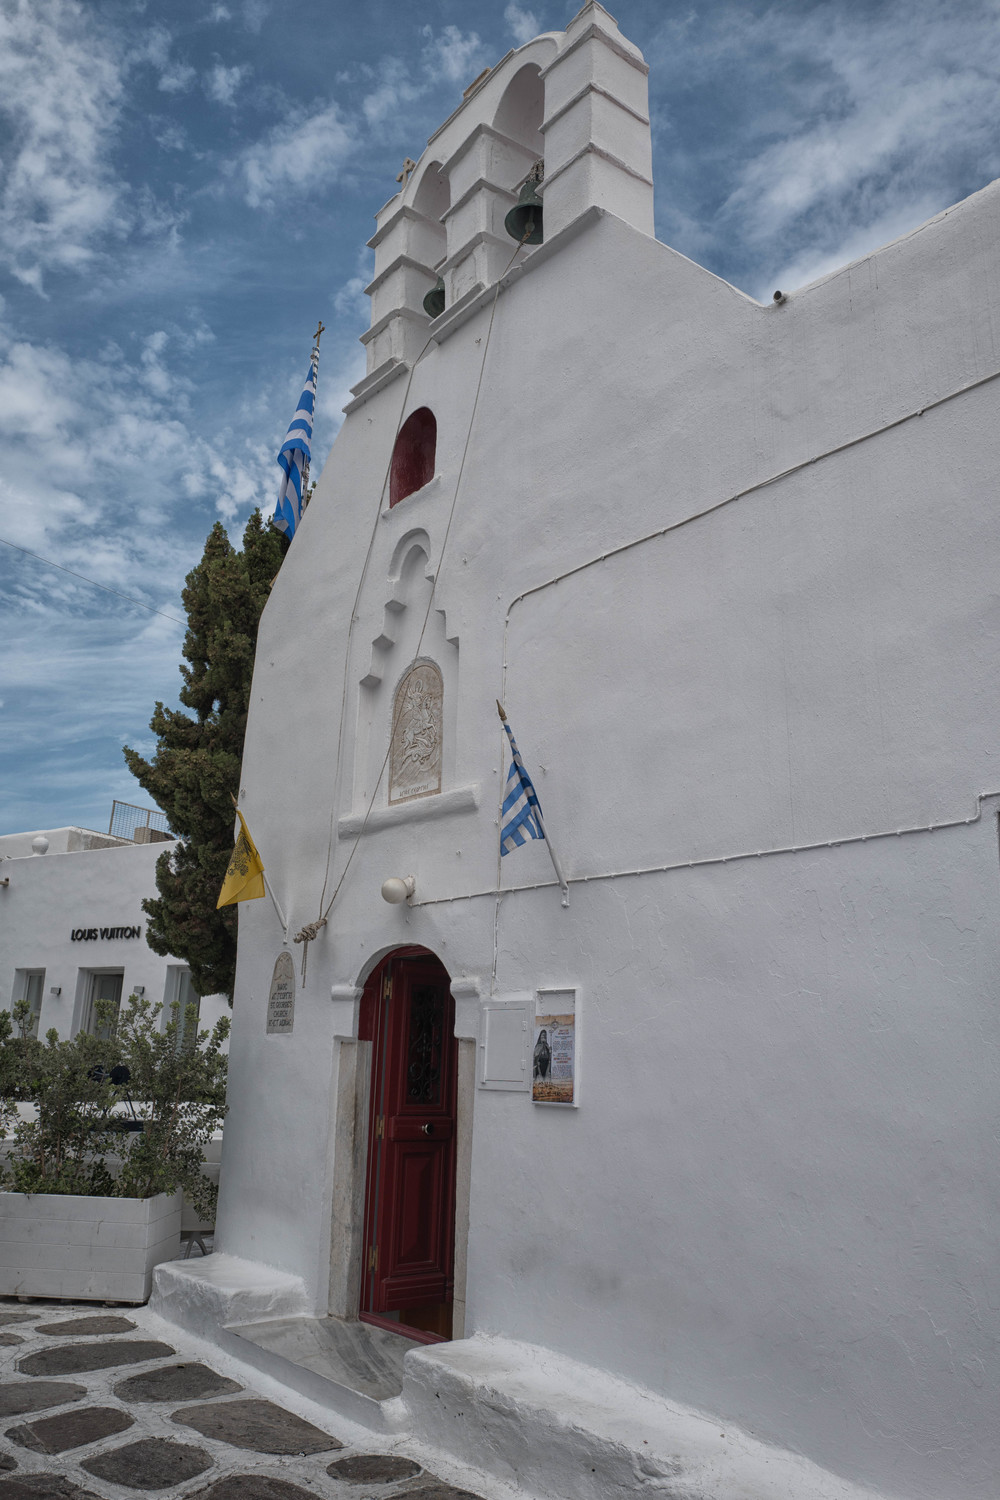 St. George's church, Mykonos Chora, a new perspective in a narrow street. Luis Vuitton in competition for the soul